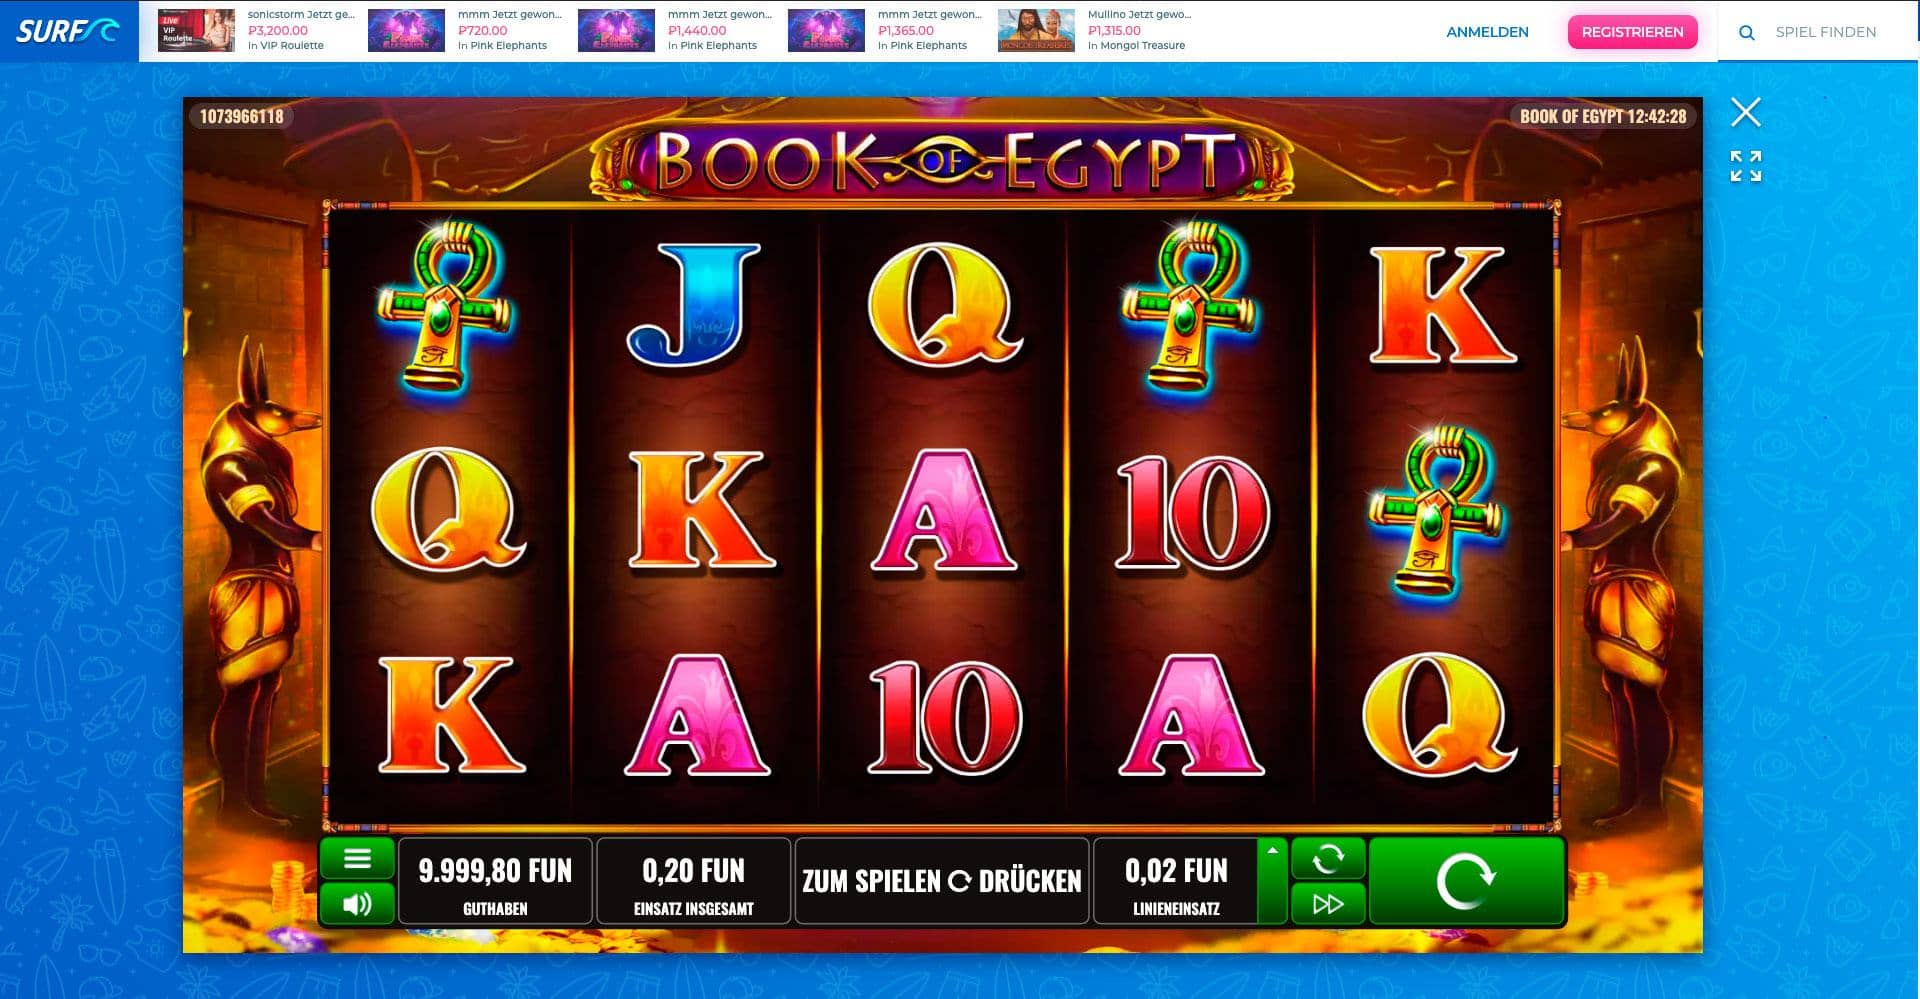 Surf Casino Book of Egypt